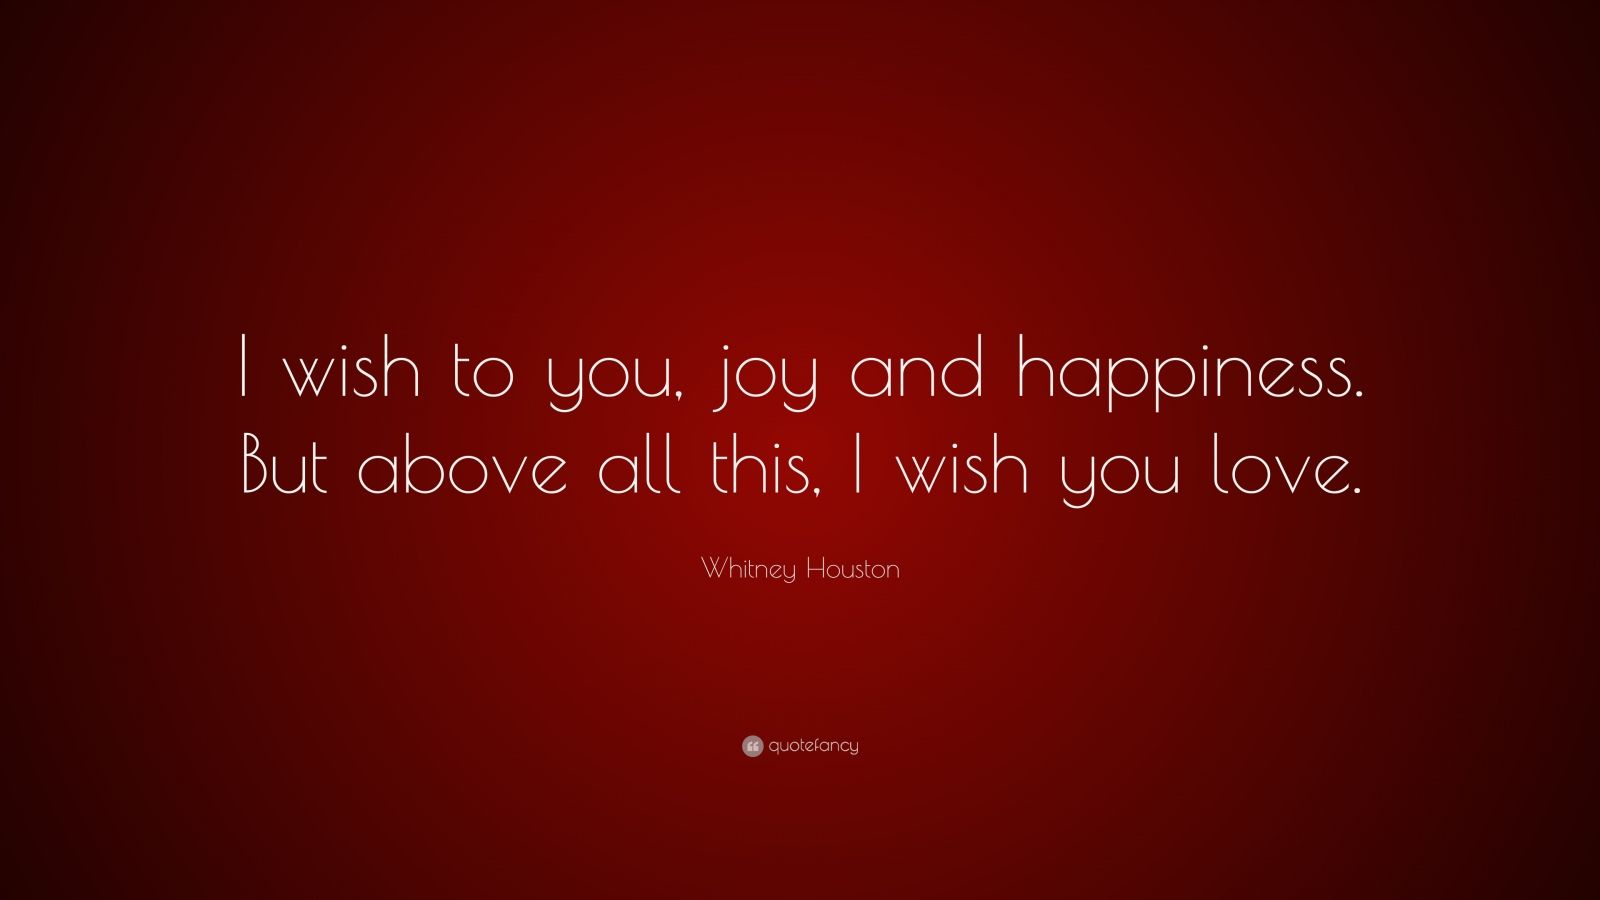 """Quotes About Love And Happiness: Whitney Houston Quote: """"I Wish To You, Joy And Happiness"""